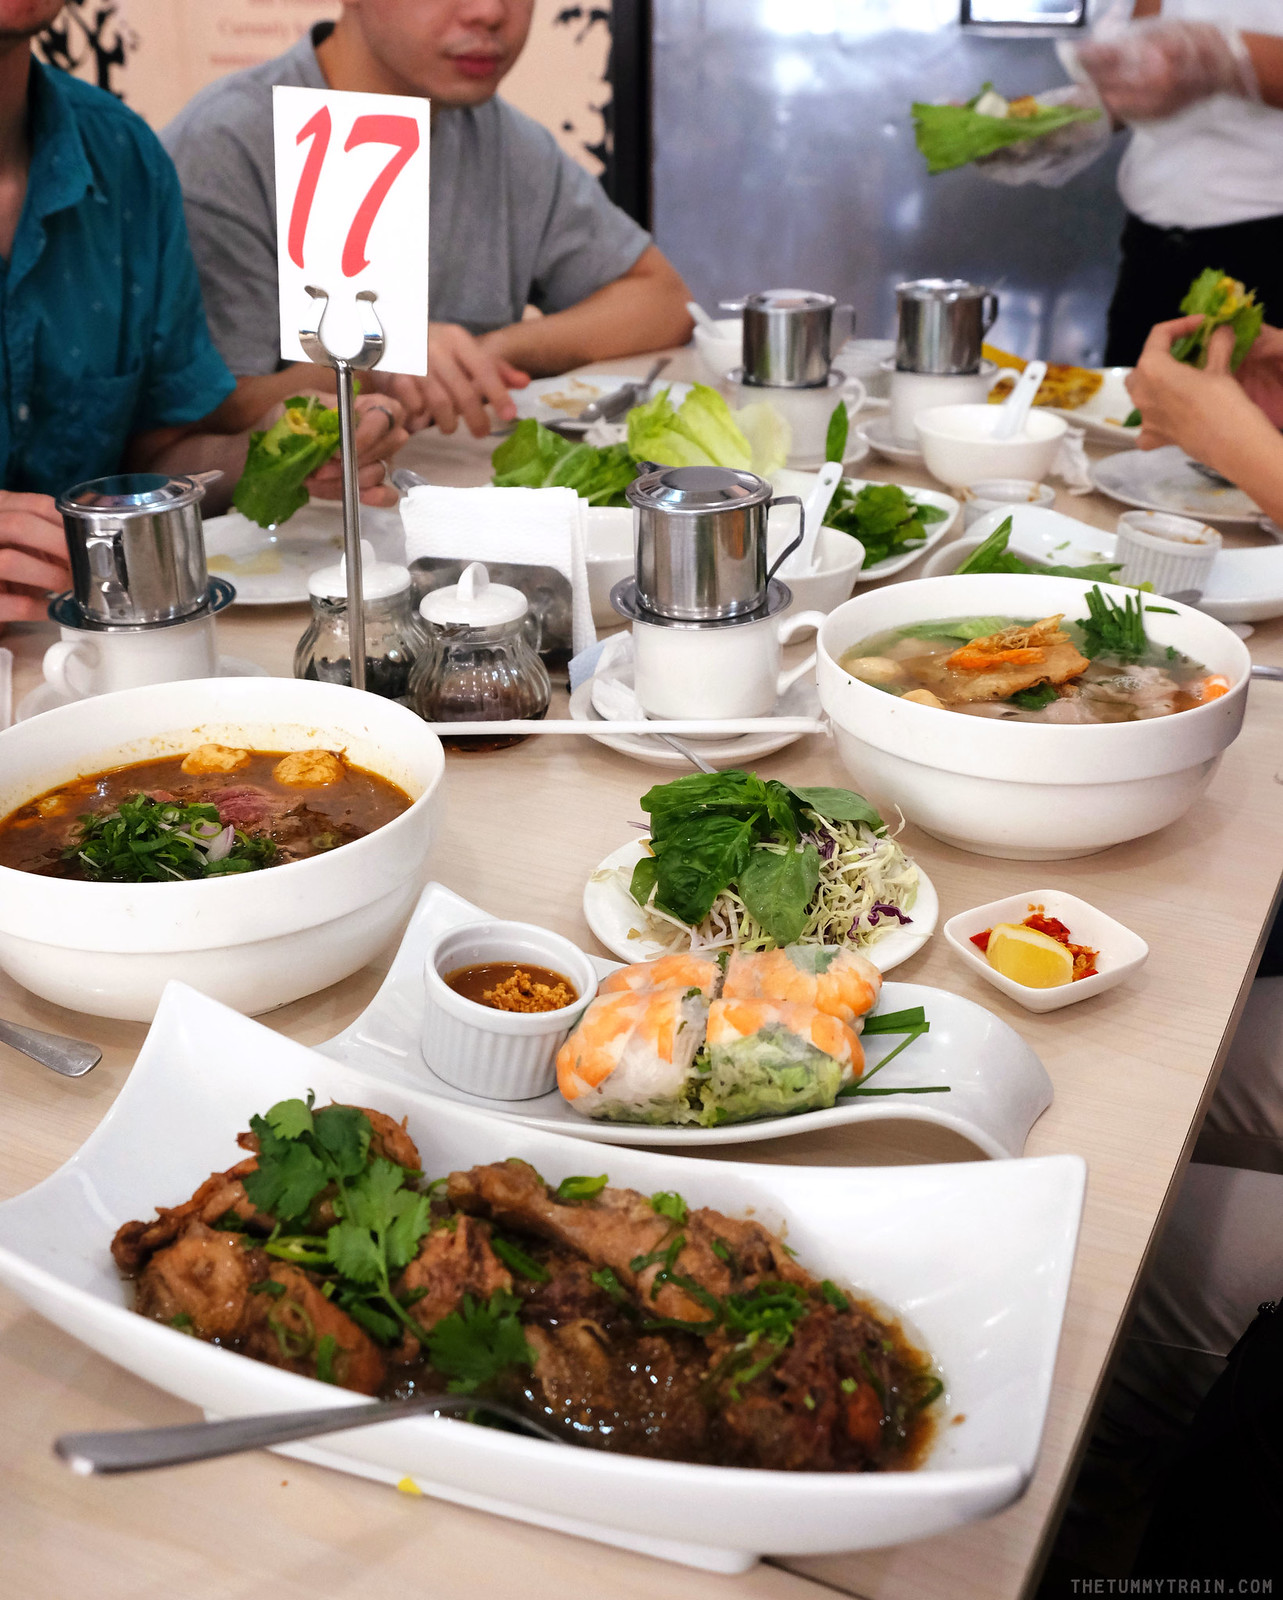 34940434375 5a377da934 h - Tra Vinh is the place to go for Vietnamese food cravings